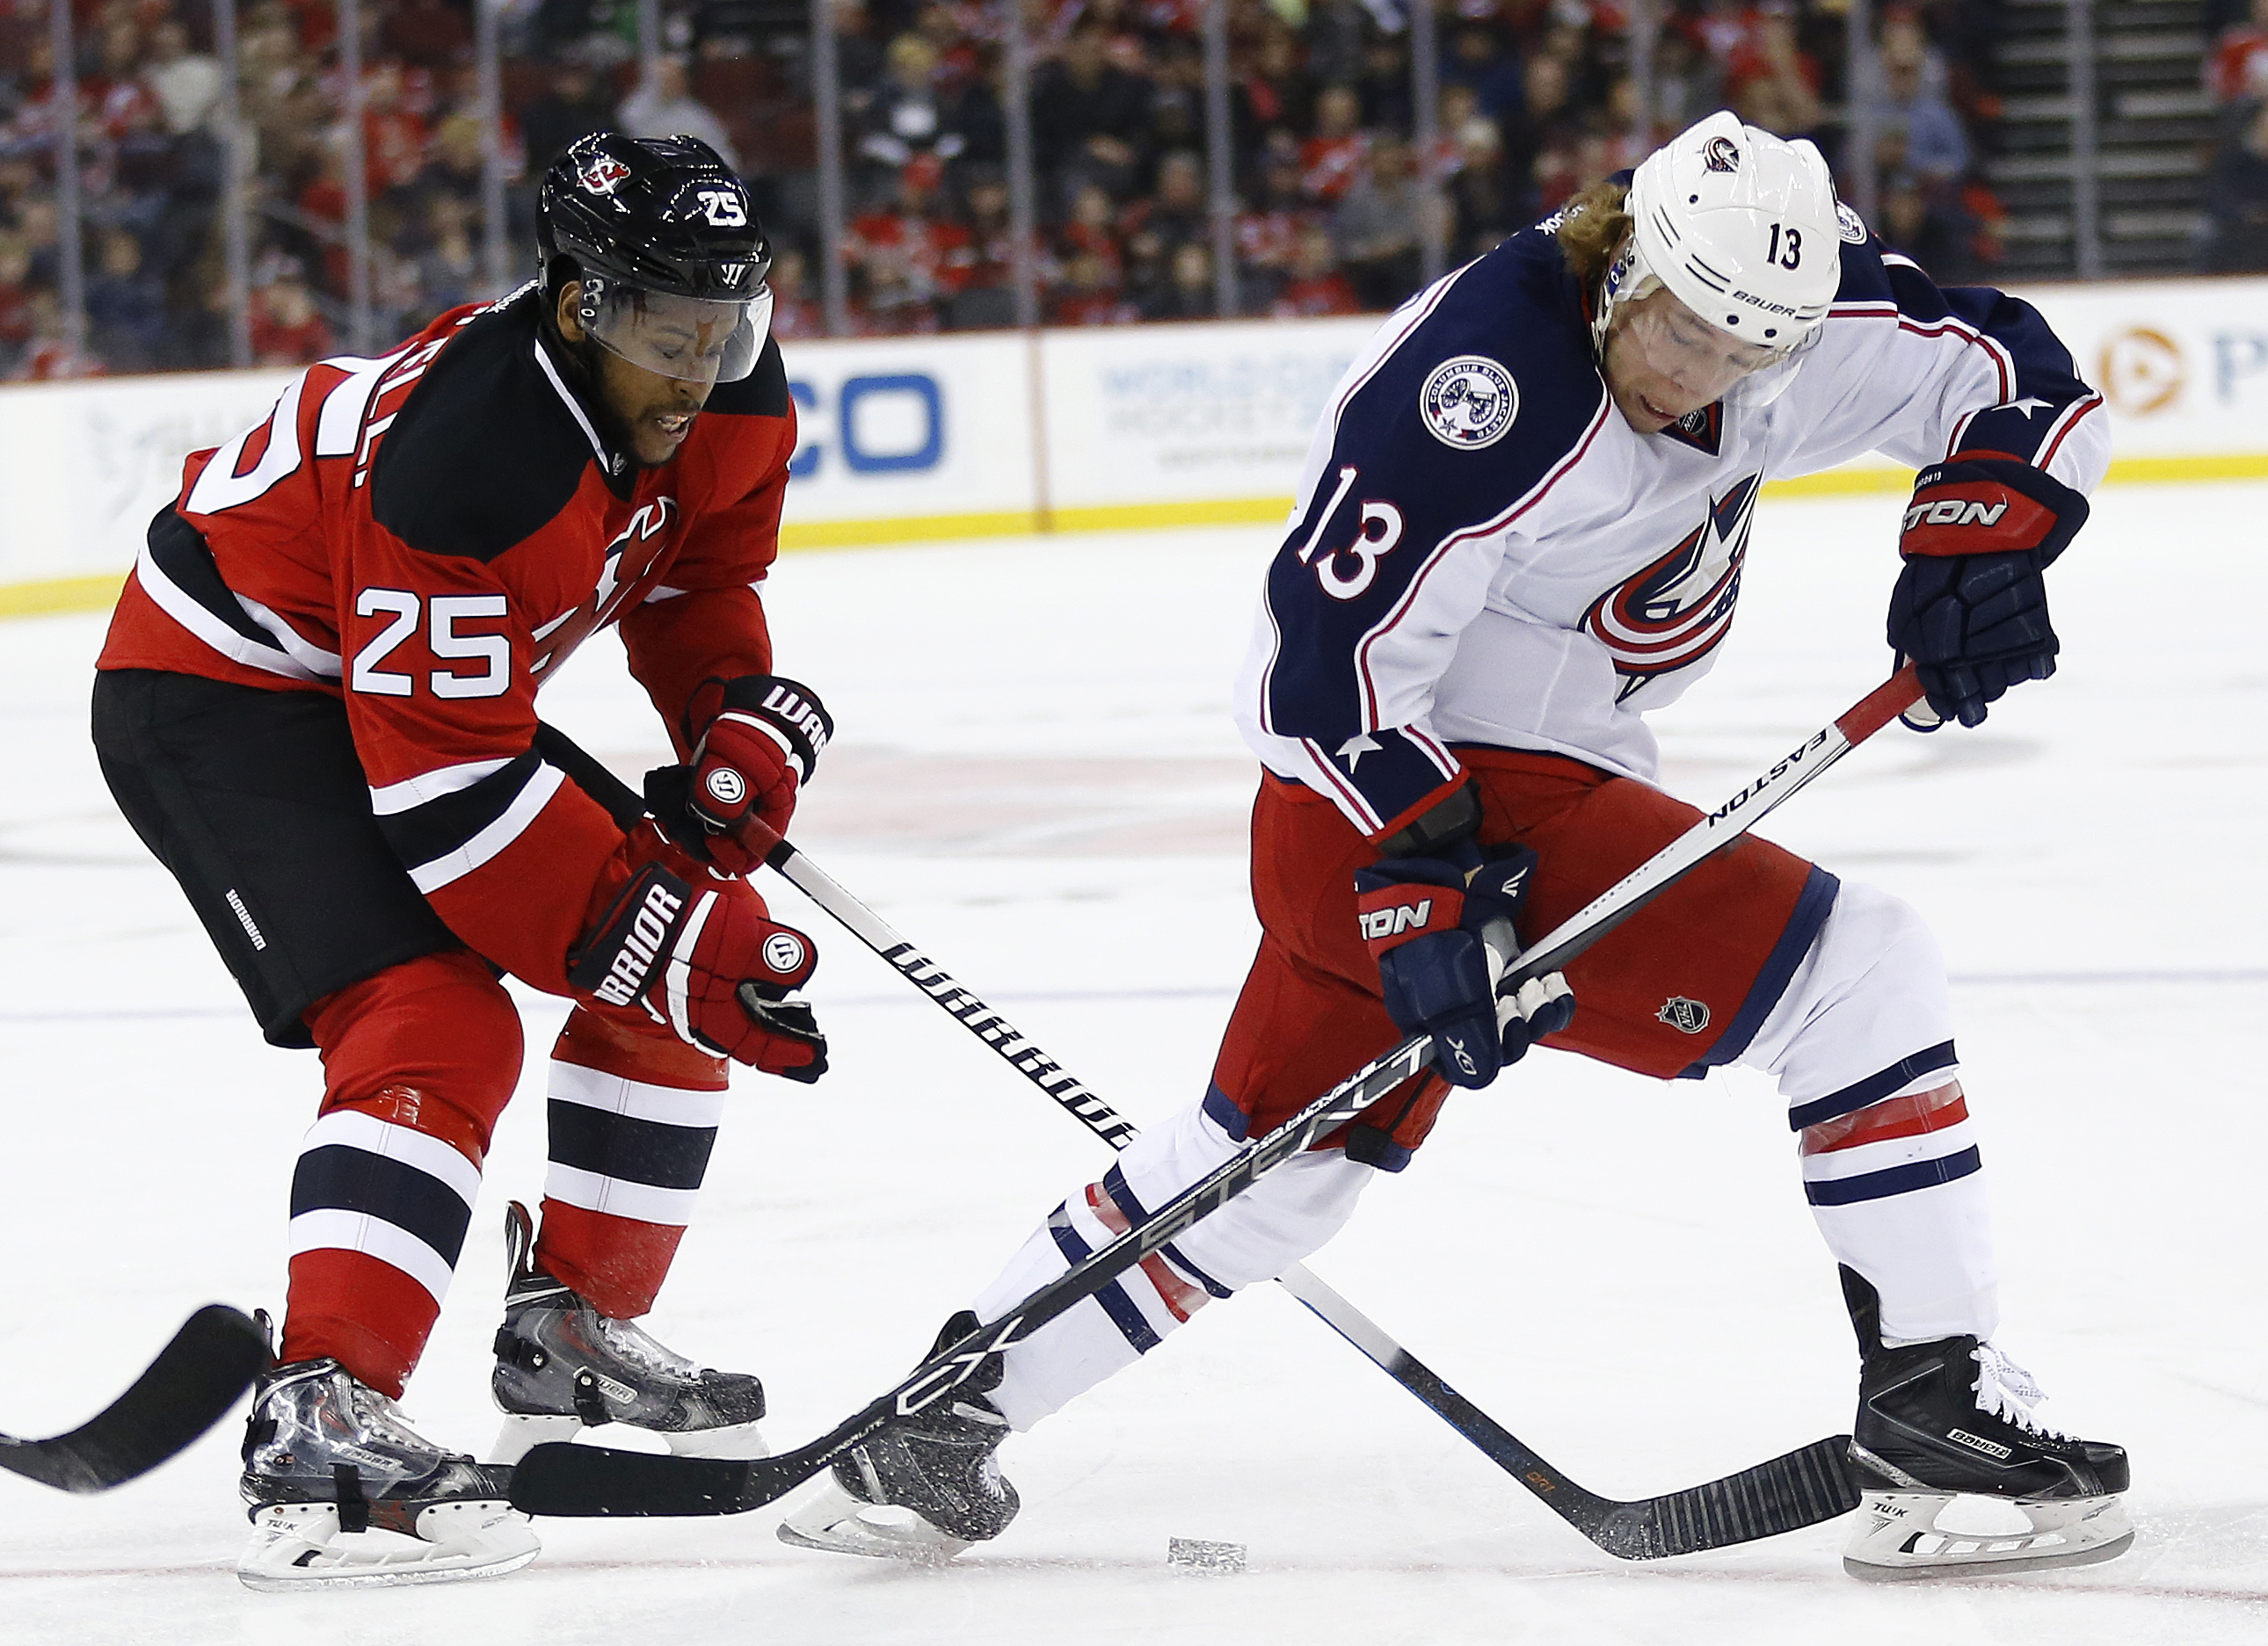 Columbus Blue Jackets right wing Cam Atkinson (13) and New Jersey Devils right wing Devante Smith-Pelly (25) compete for the puck during the first period of an NHL hockey game, Sunday, March 20, 2016, in Newark, N.J. (AP Photo/Julio Cortez)